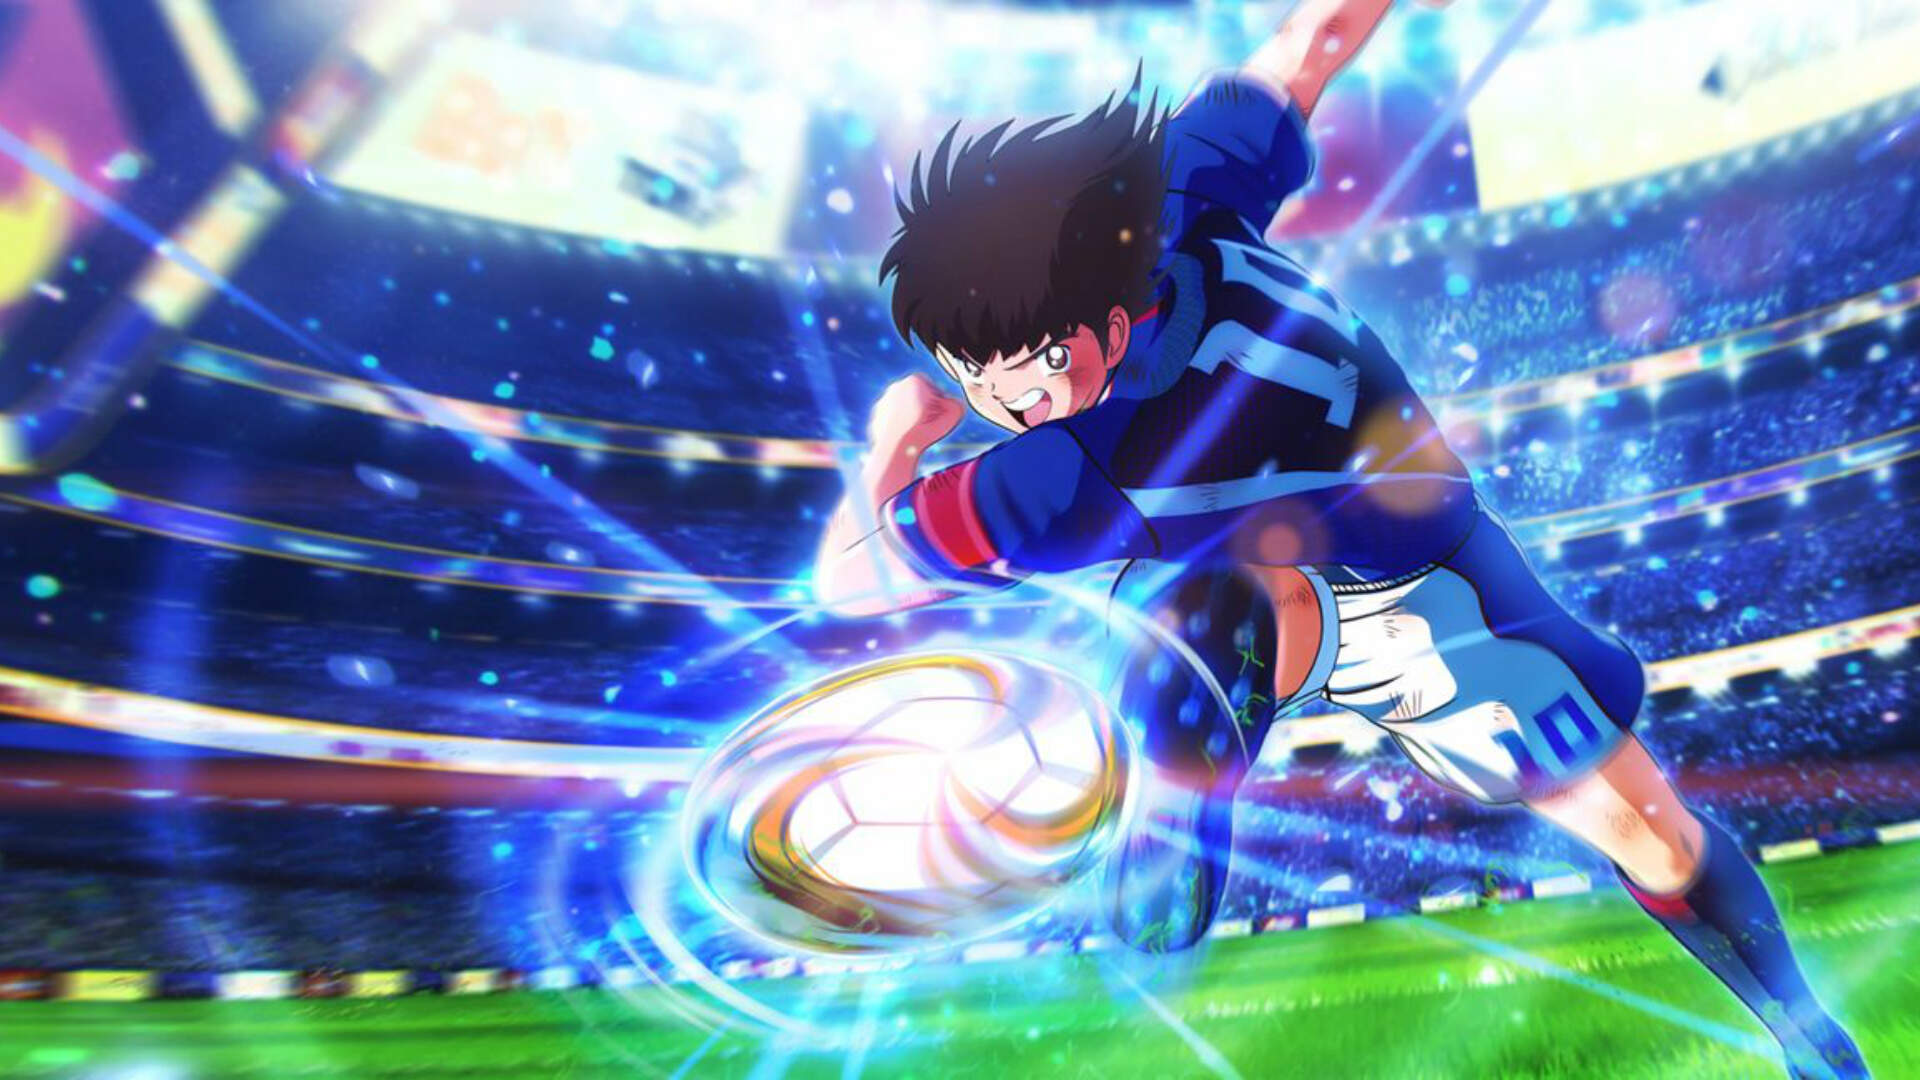 Captain Tsubasa Giving FIFA Much-Needed Competition With Super-Powered Shonen Soccer